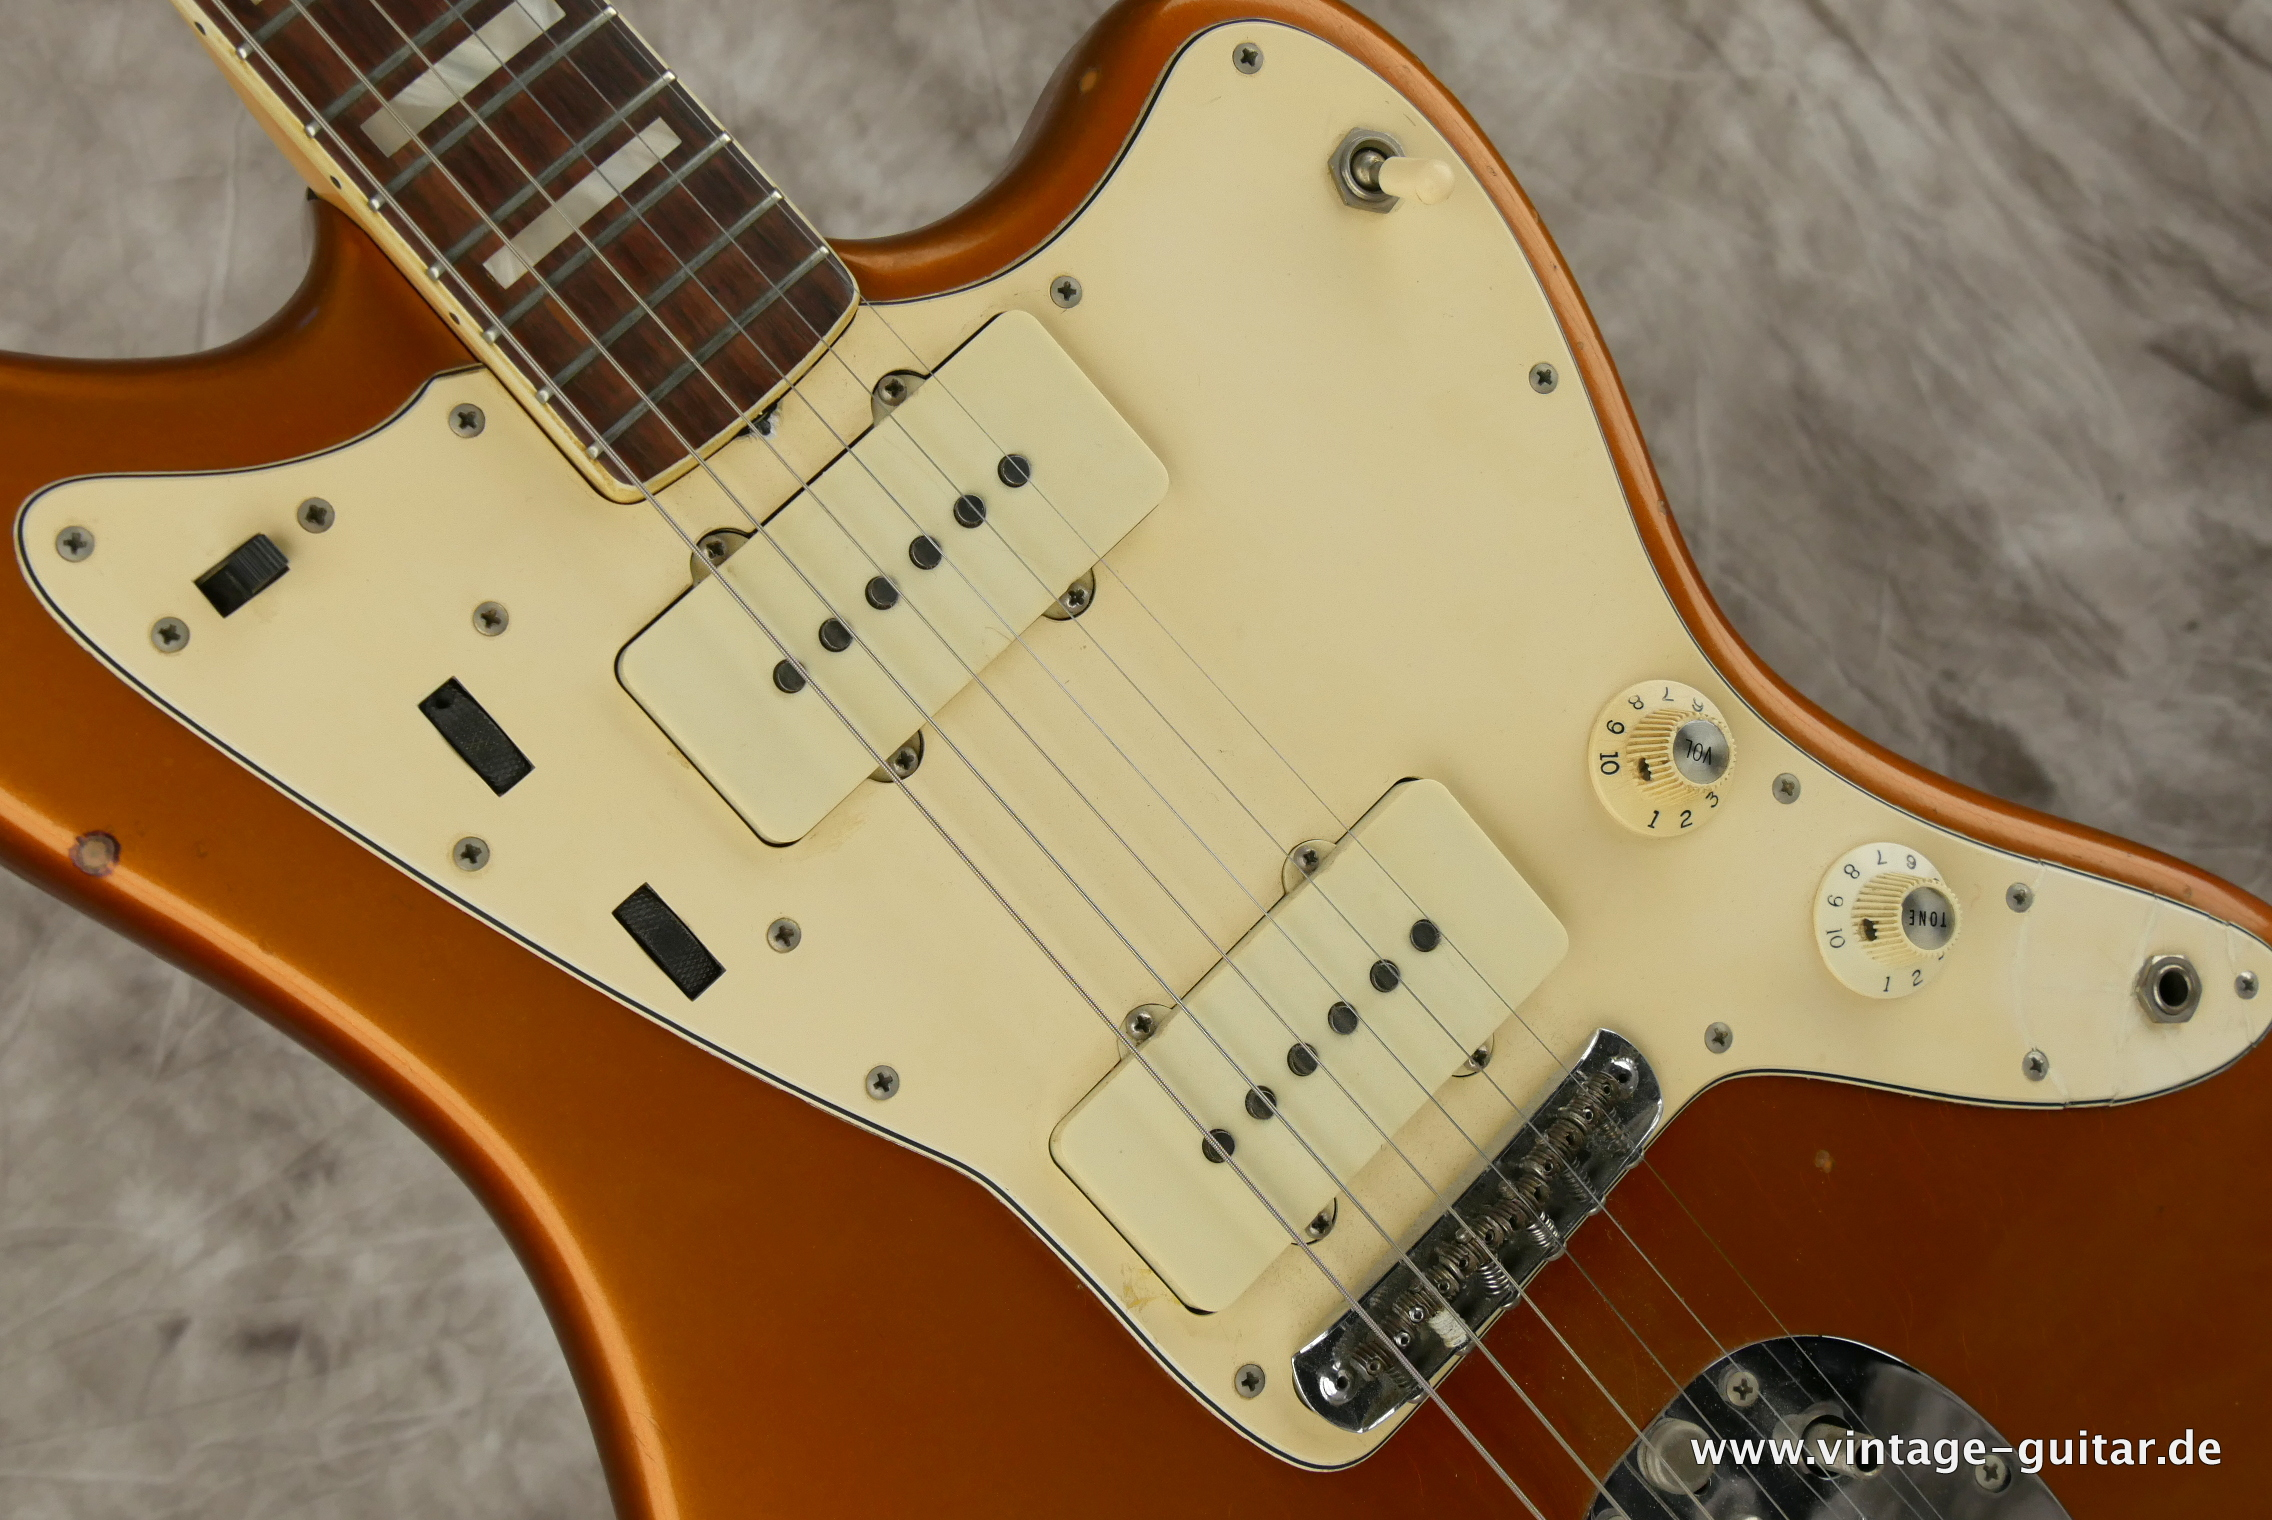 img/vintage/3230/Fender-Jazzmaster-1973-candy-apple-red-012.JPG